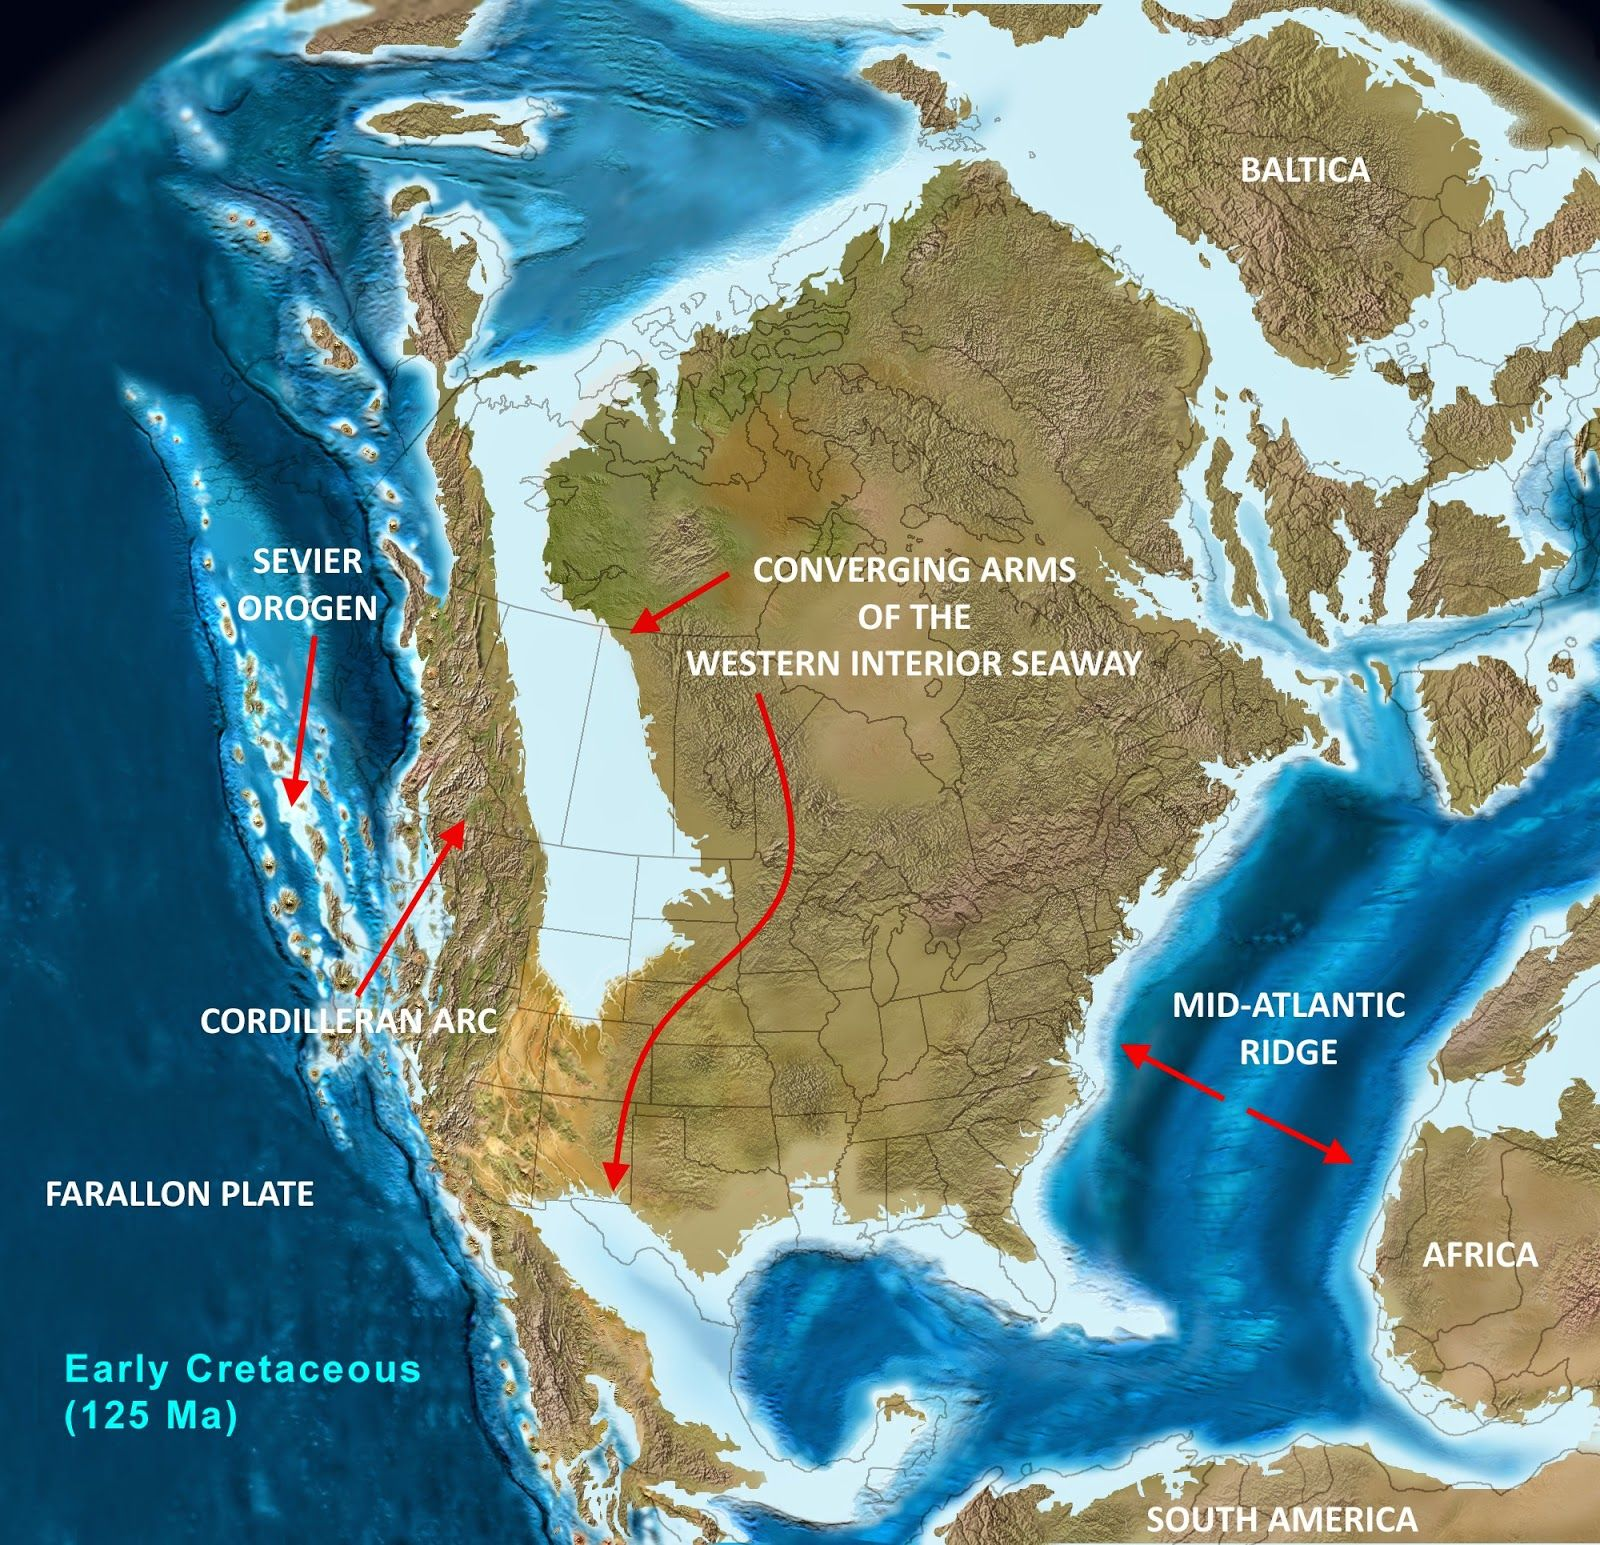 North American Tectonics During The Early Cretaceous 125